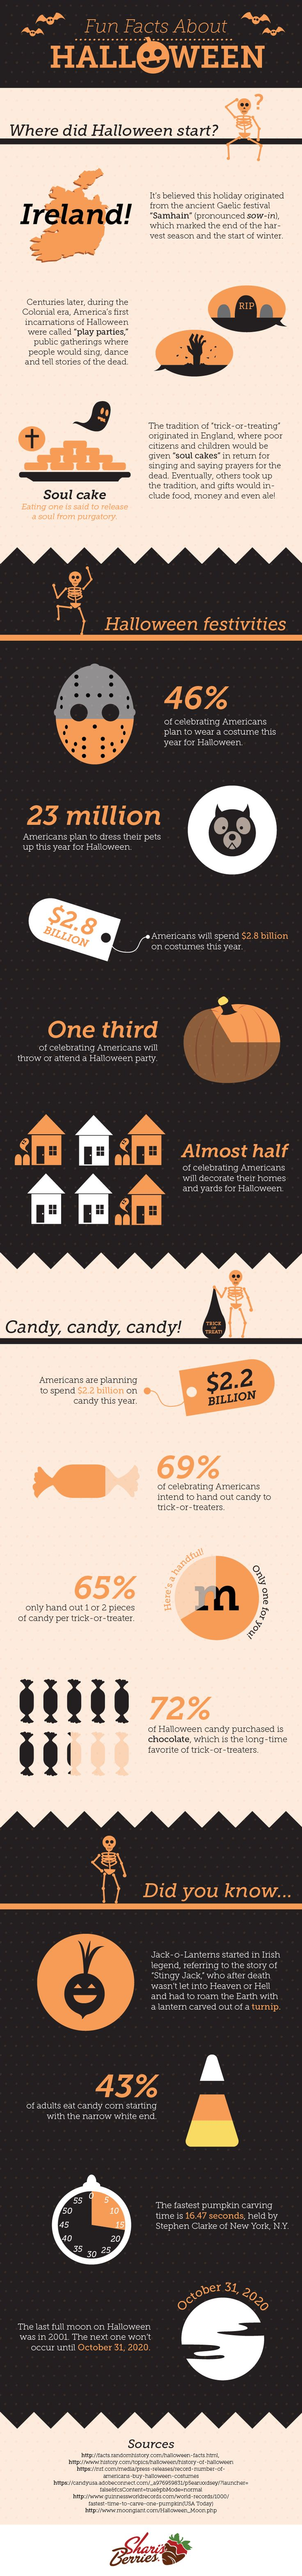 "Fun Facts About Halloween - How did trick-or-treating start? Why is it called a Jack-o-Lantern""? Halloween is full of mystery... So we did a little poking around to answer these questions and brush up on our Halloween knowledge and trivia. And of course, impress our friends at the next Halloween party."